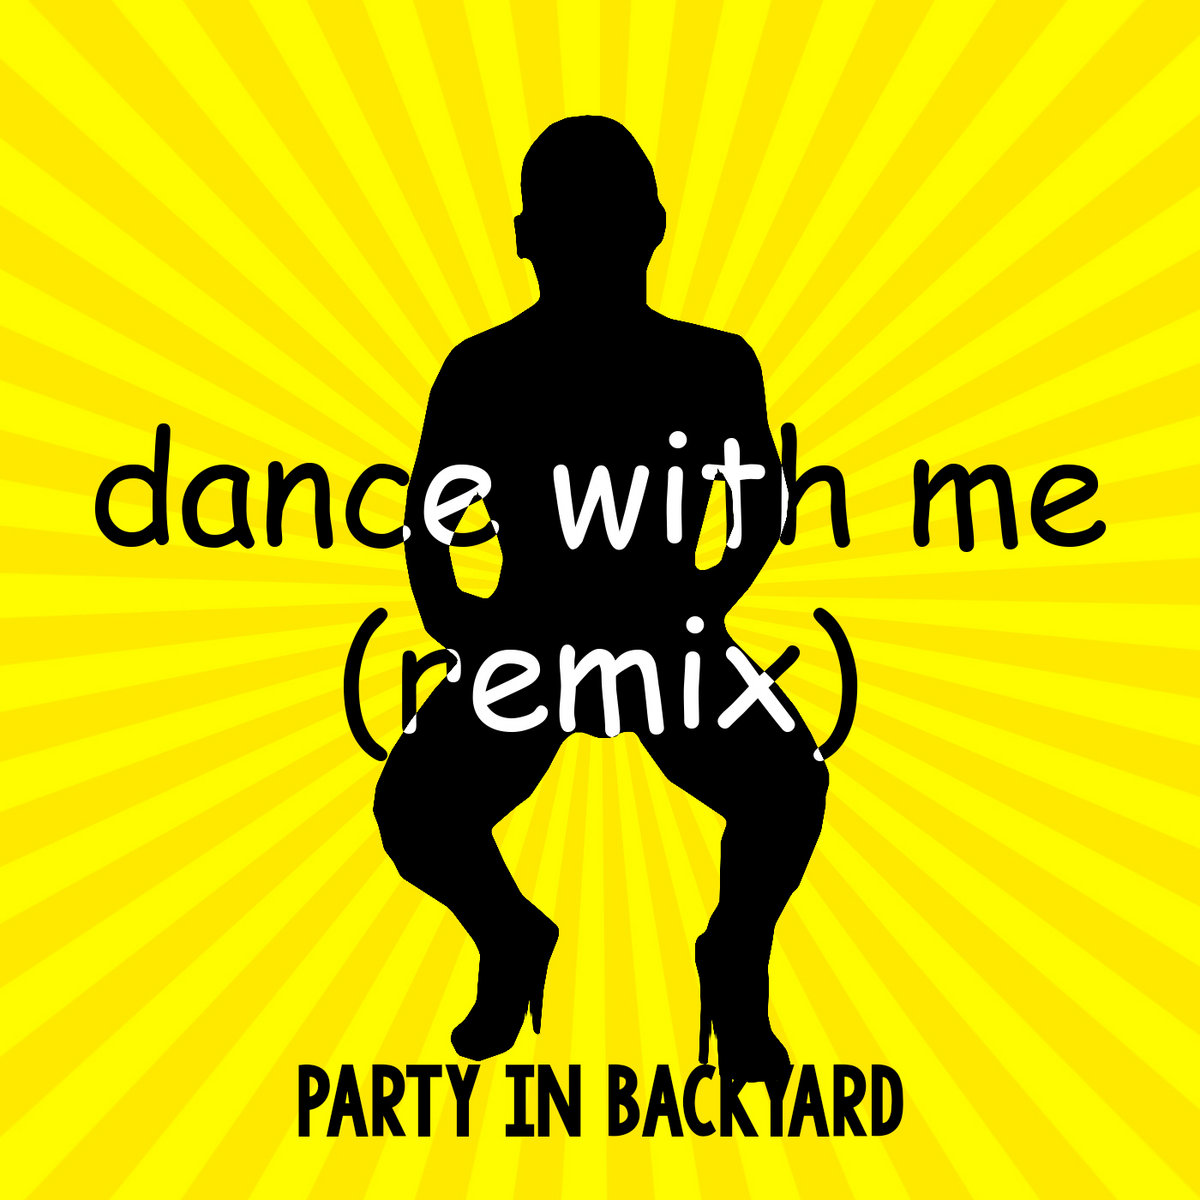 party in backyard dance with me remix party in backyard